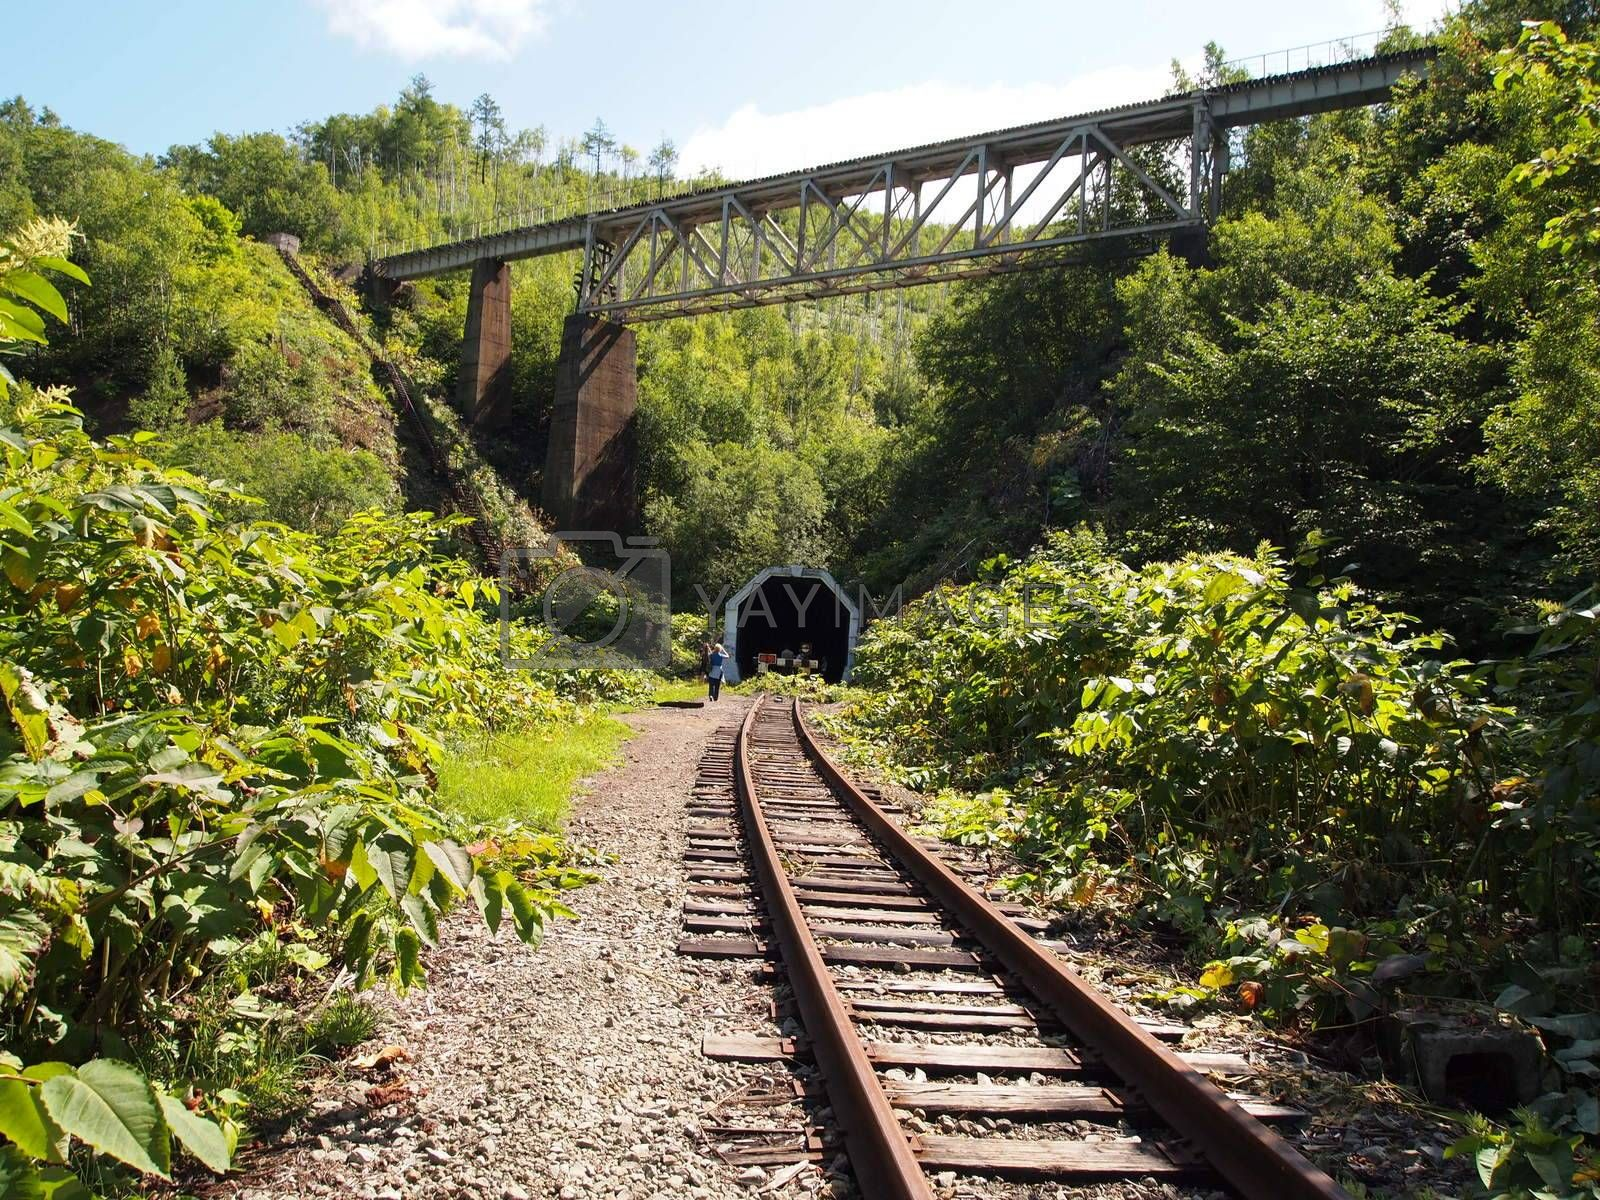 Tunnel in the mountain. The railroad through the mountain.